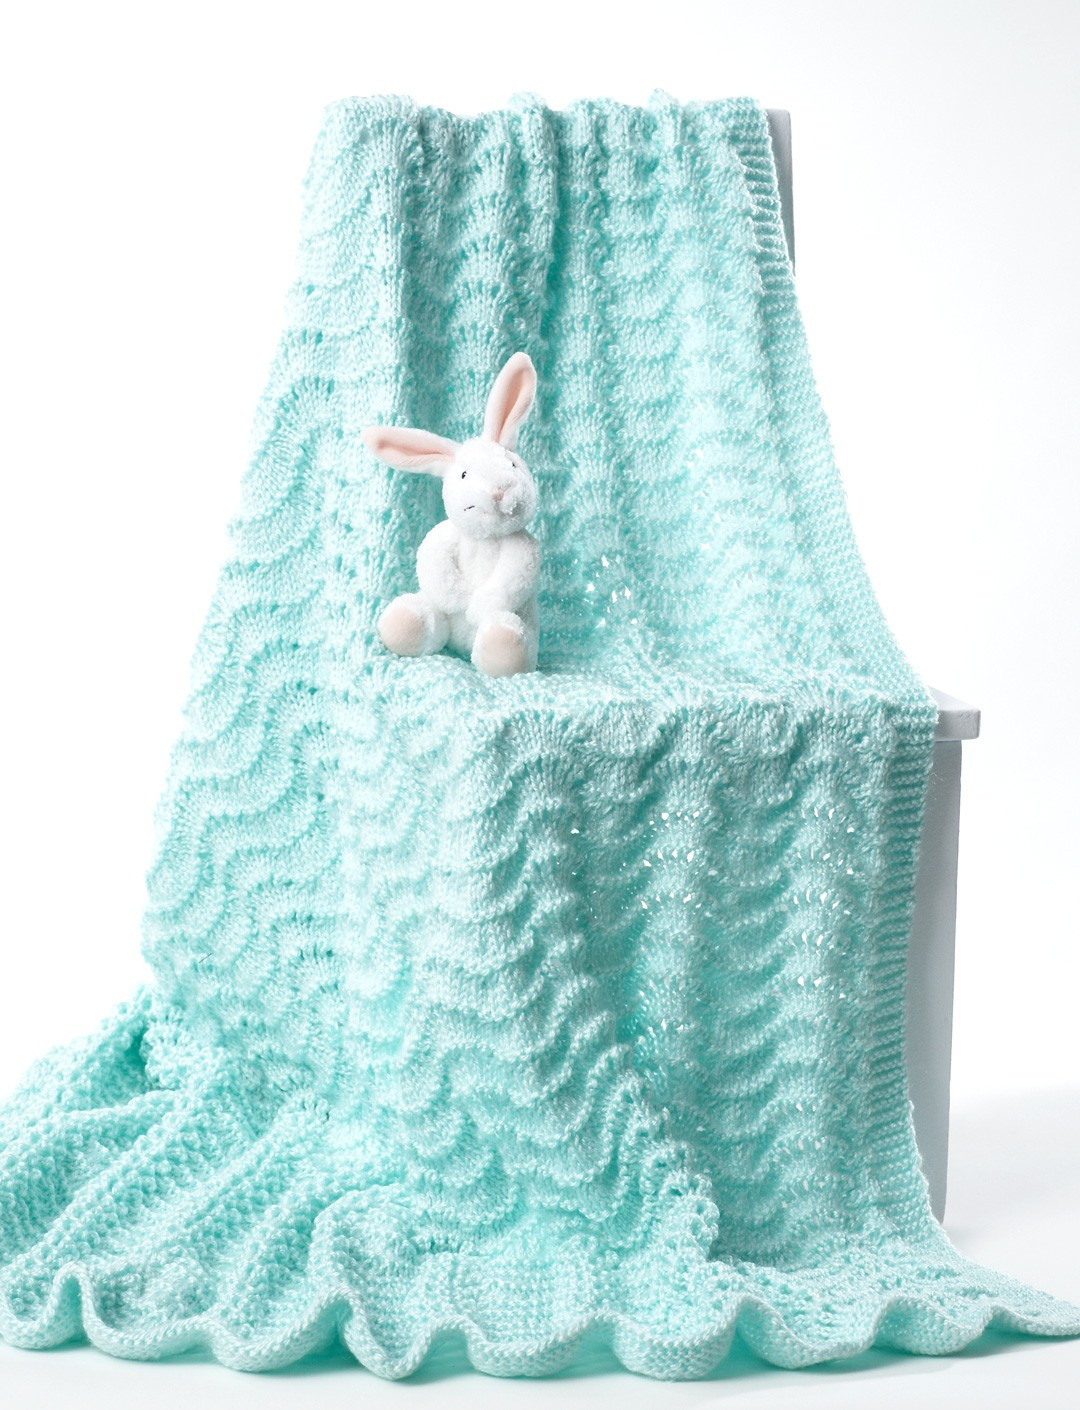 Free Baby Blanket Knitting Patterns Awesome Easy Baby Blanket Knitting Patterns Of Delightful 45 Photos Free Baby Blanket Knitting Patterns